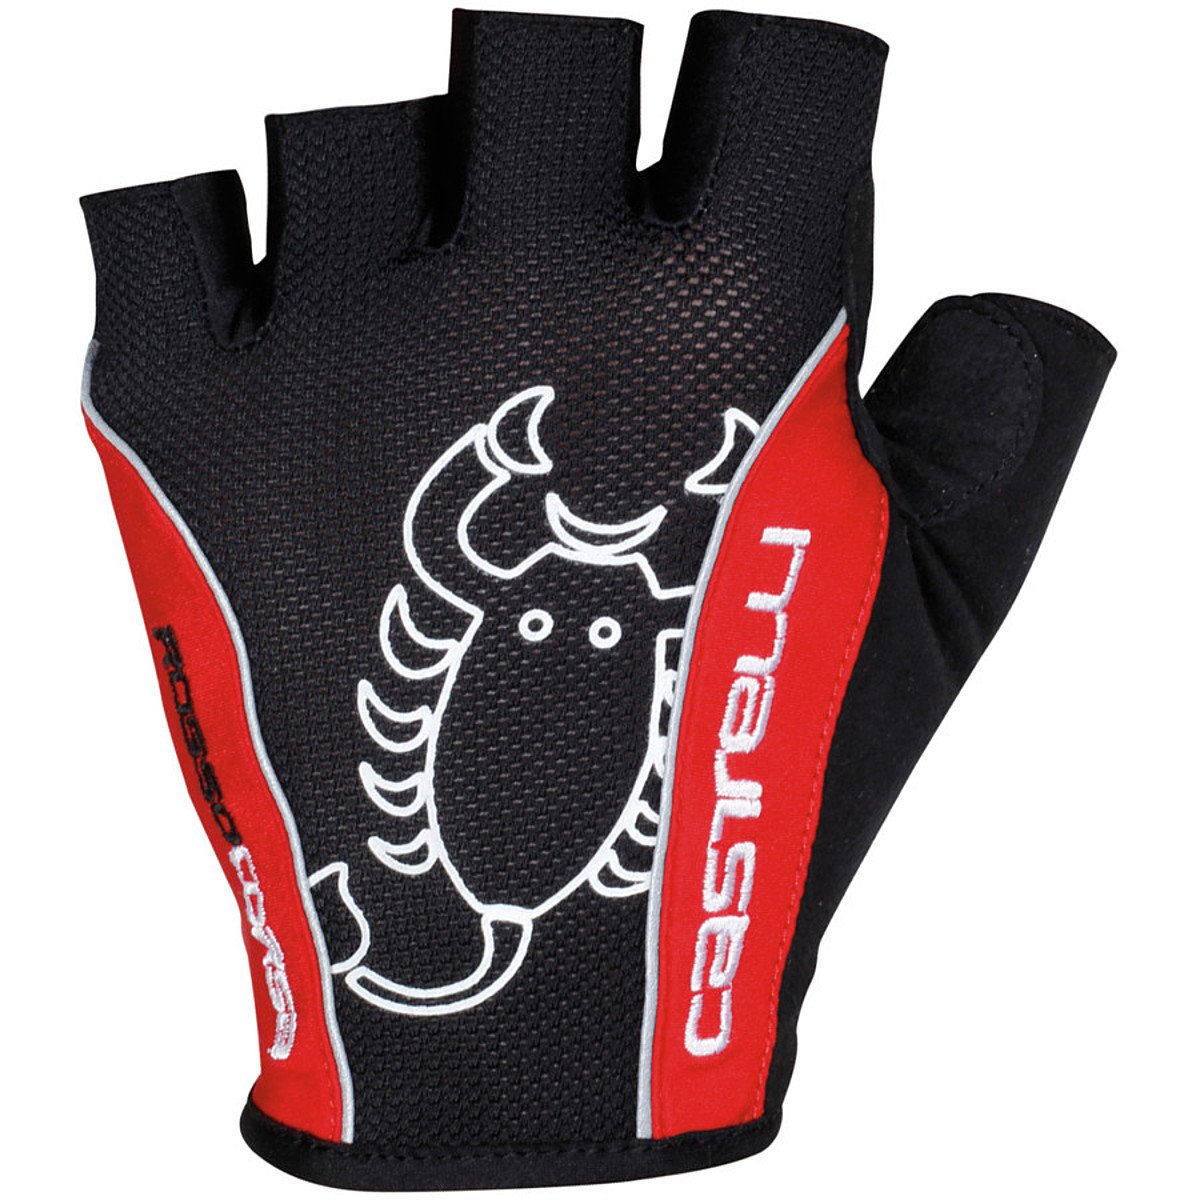 K13032 Castelli 2018 Rosso Corsa Classic Cycling Gloves